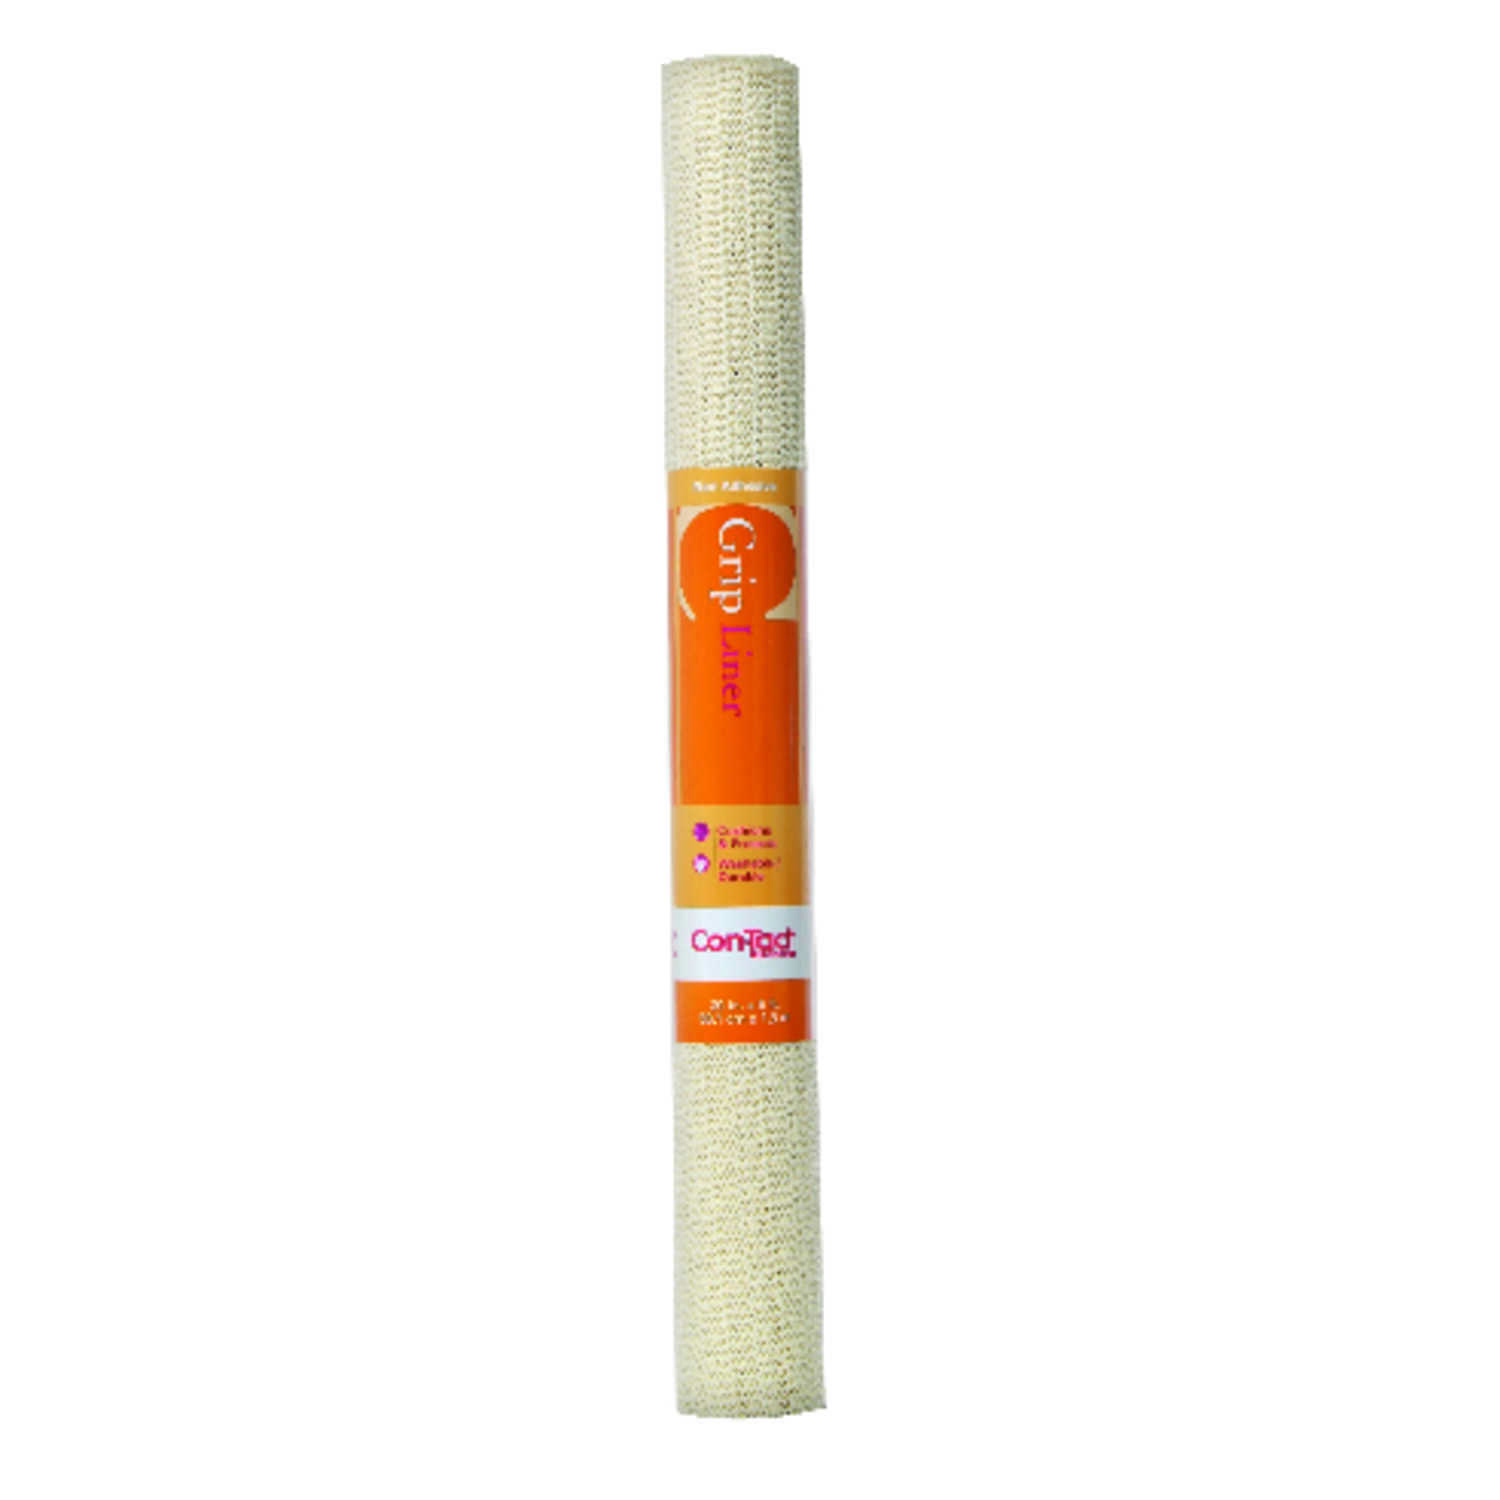 Con-Tact  Grip Liner  5 ft. L x 20 in. W Almond  Non-Adhesive  Liner